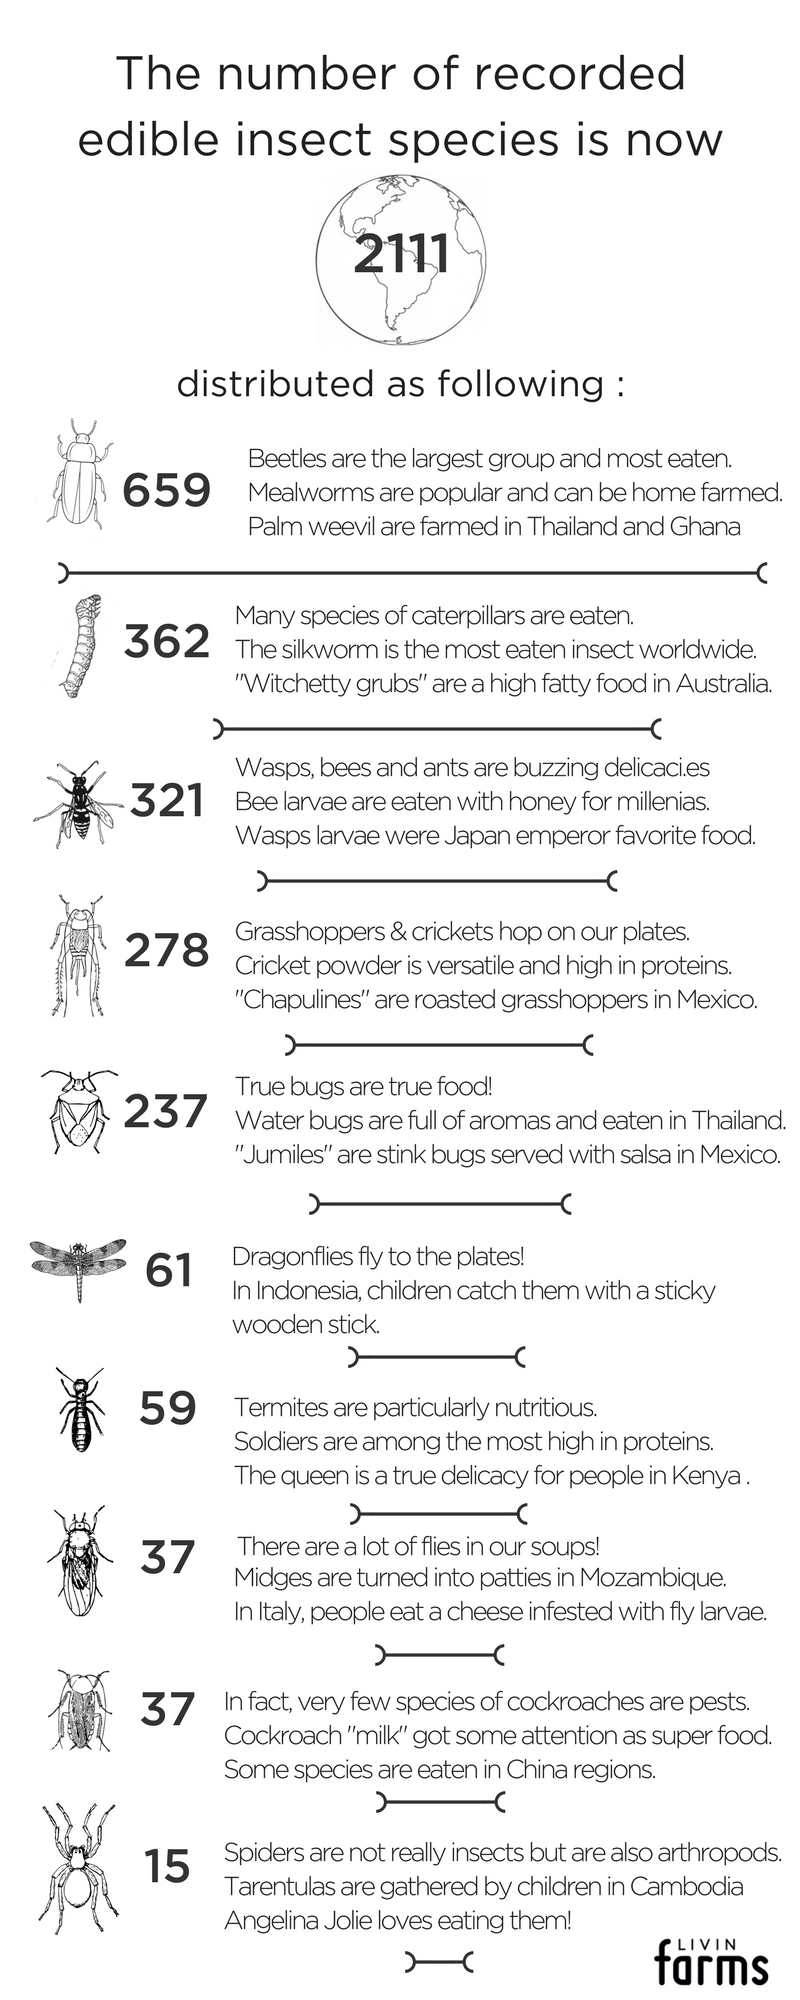 edible insects list entomophagy livin farms